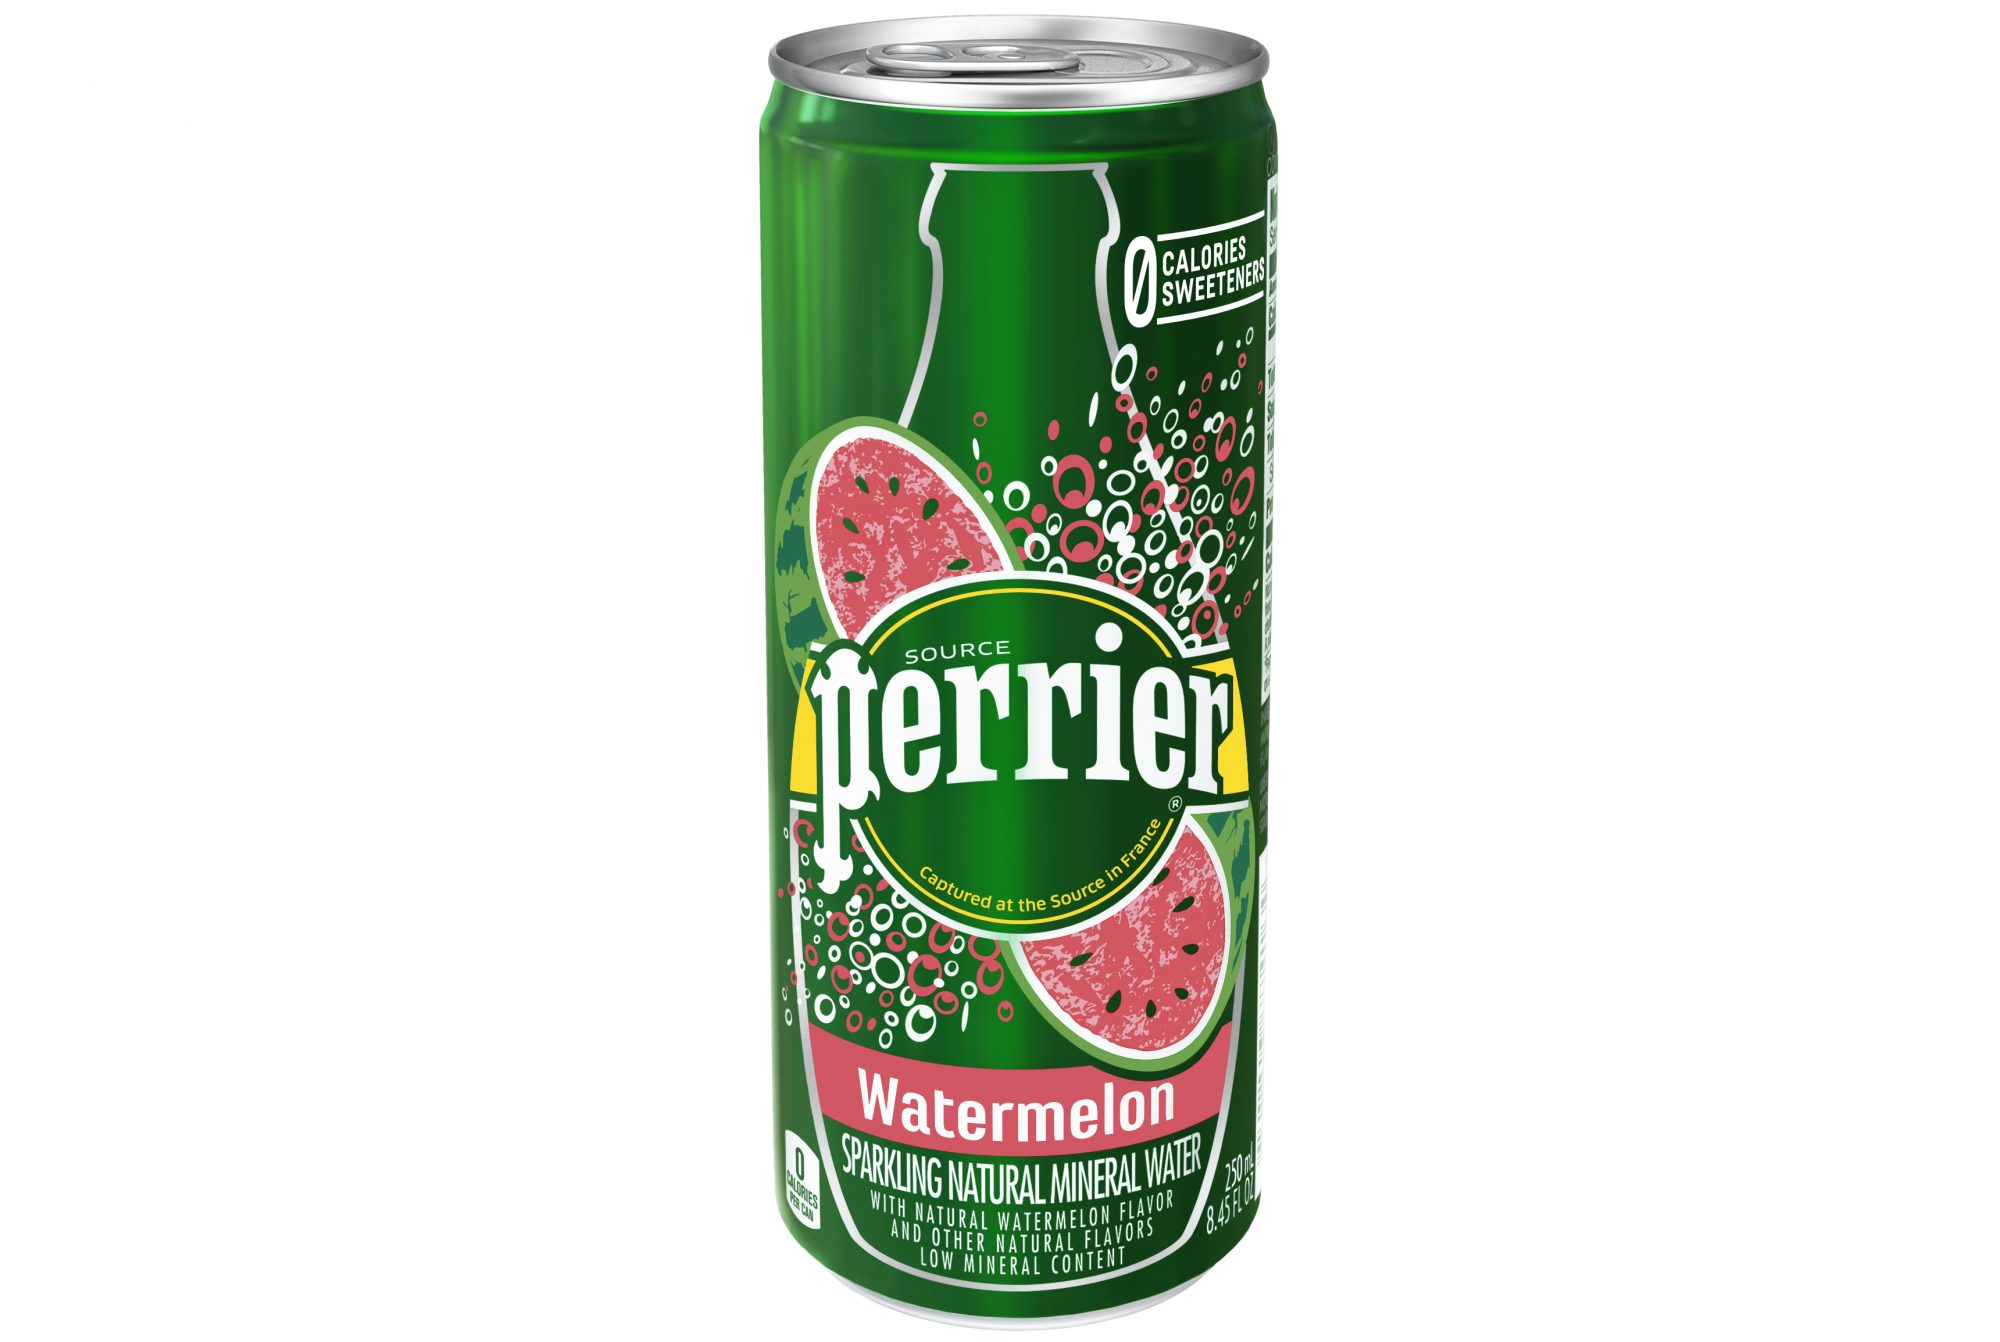 Perrier Watermelon Sparkling Water